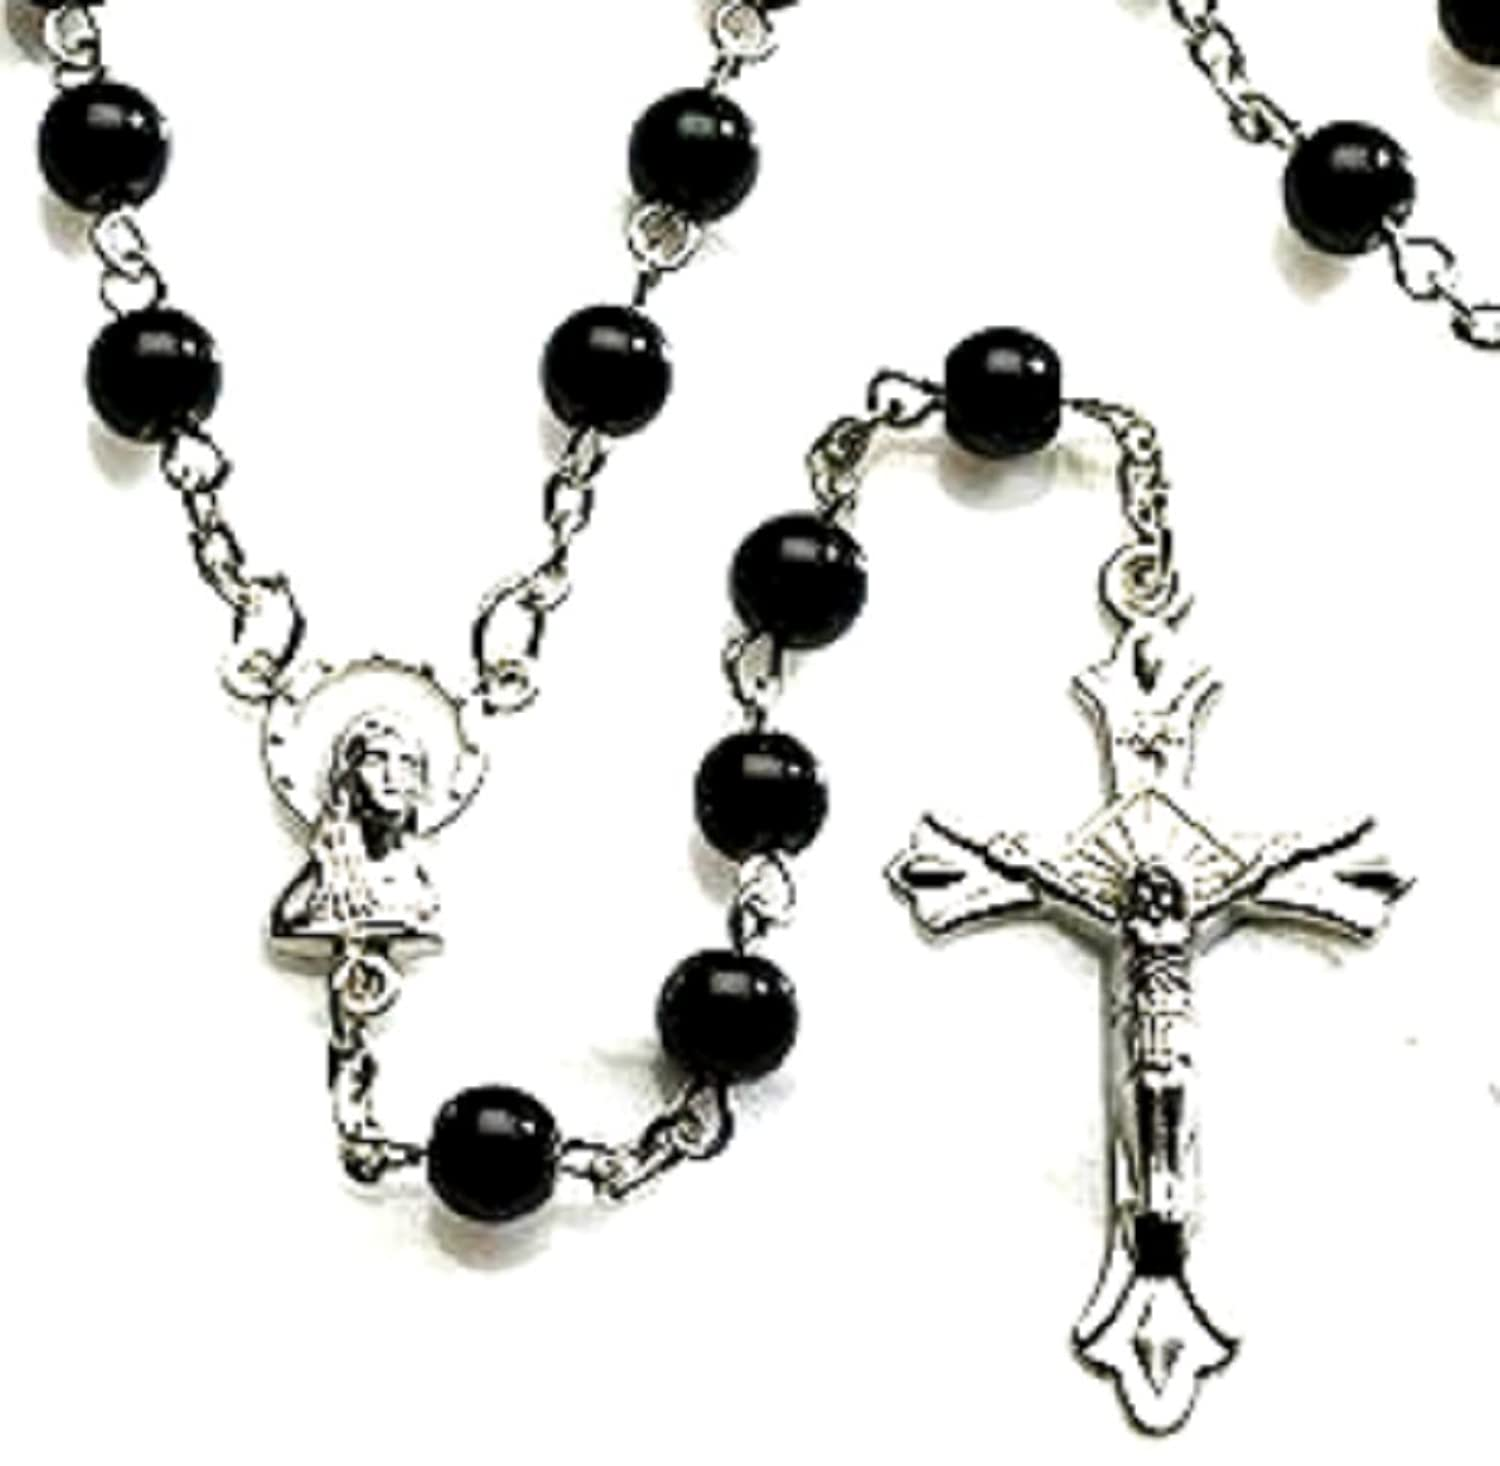 Beautiful black beaded cross necklace jewellrys website men s black glass rosary beads cross necklace pendant crucifix aloadofball Choice Image